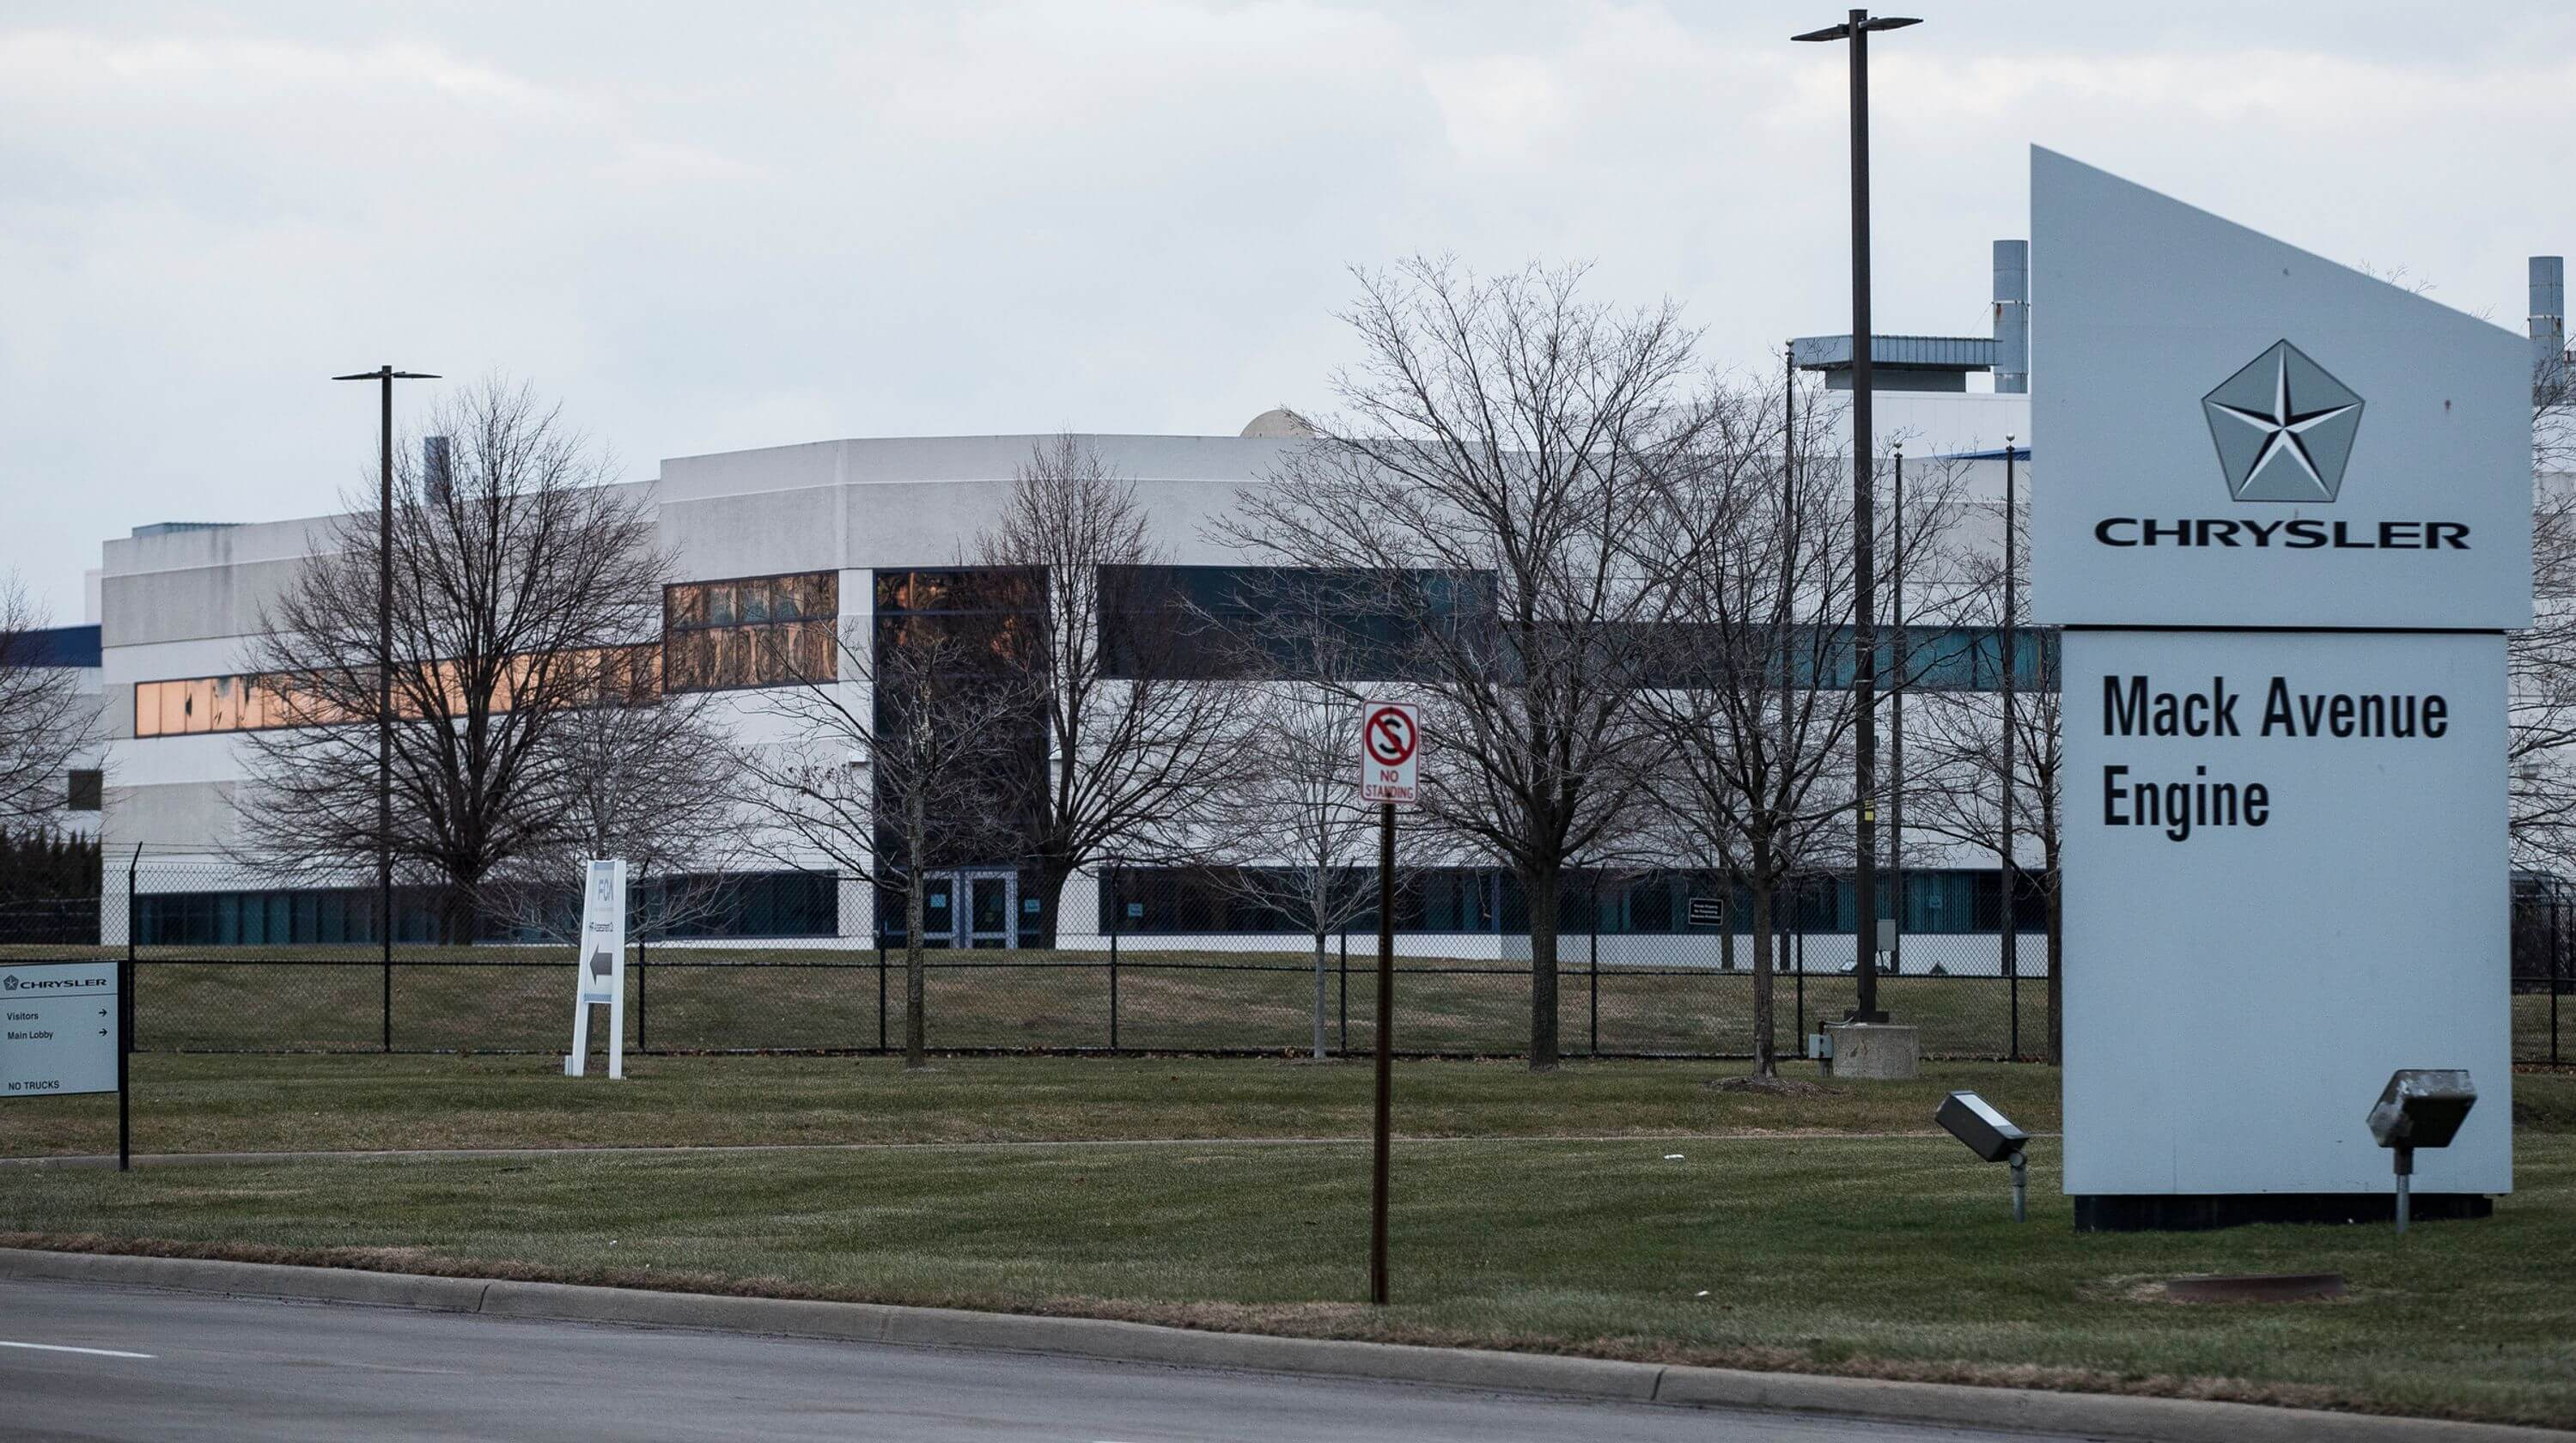 Michigan Plants Set for $4.5 Billion Fiat Chrysler Investment